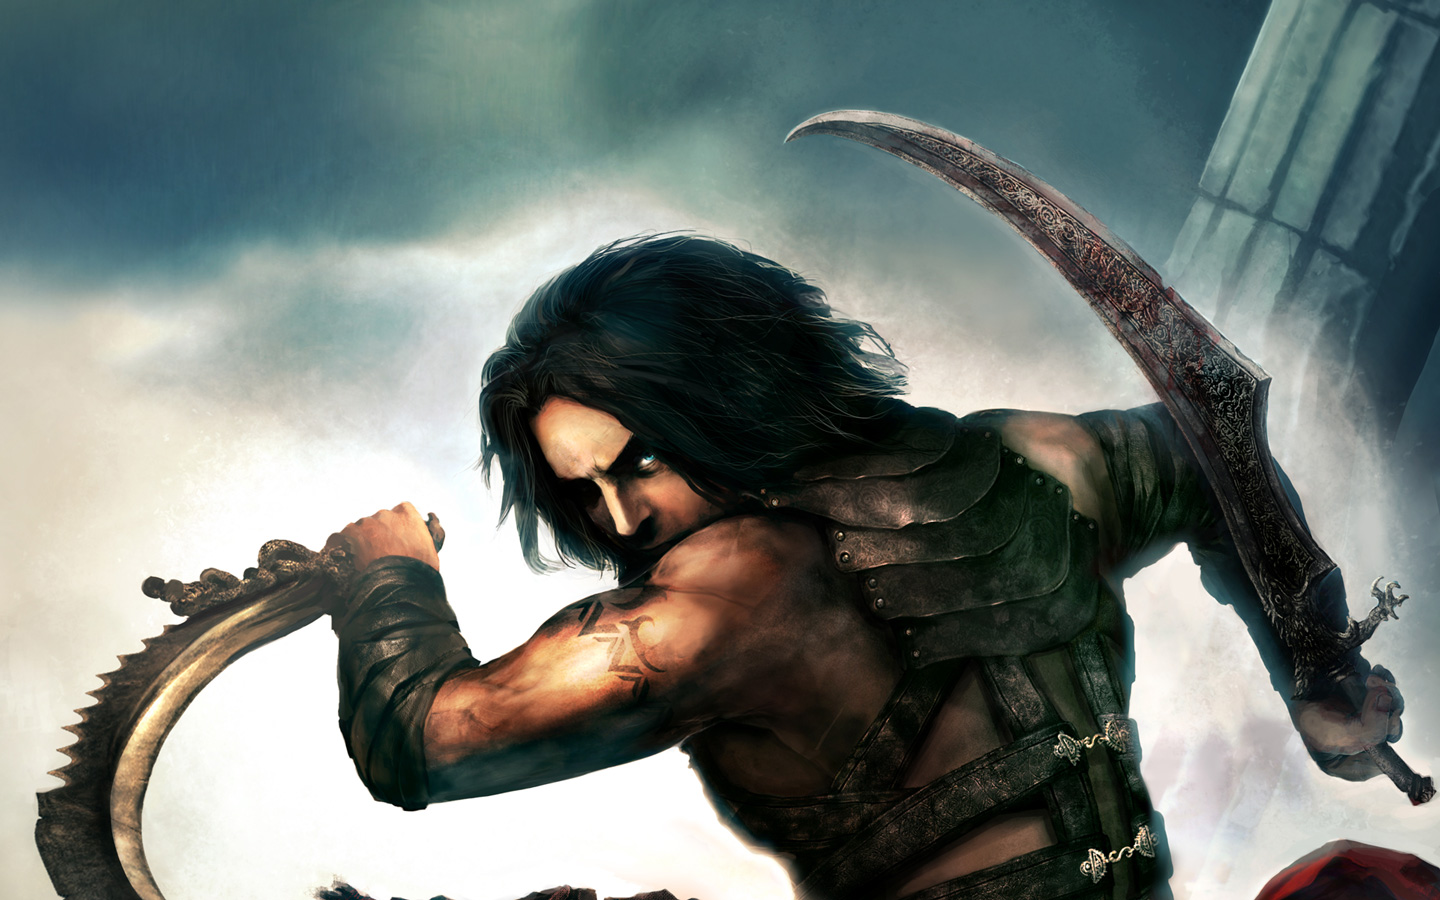 Prince of Persia: Warrior Within Wallpaper in 1440x900